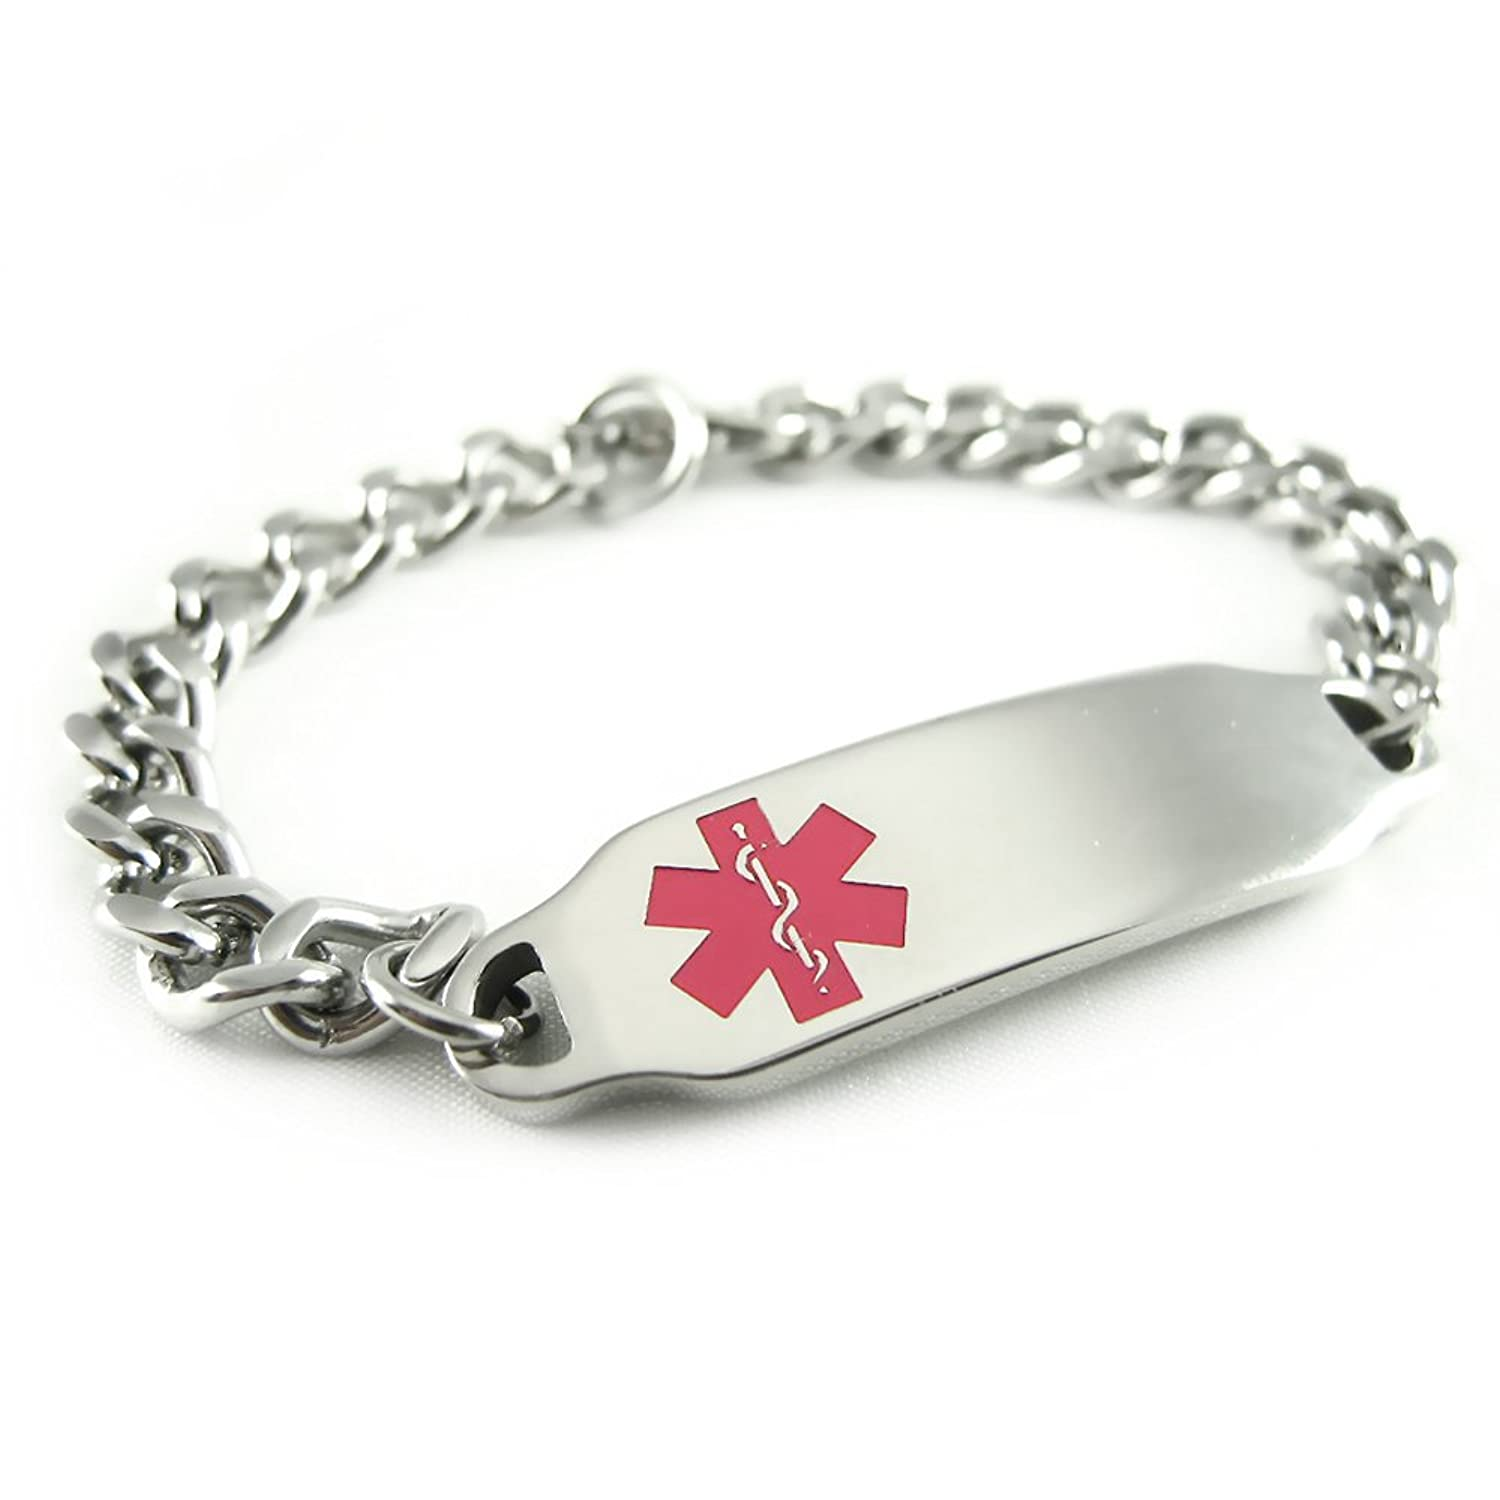 alert id stainless medical identification jewelry steel bling abb sbr az bracelet